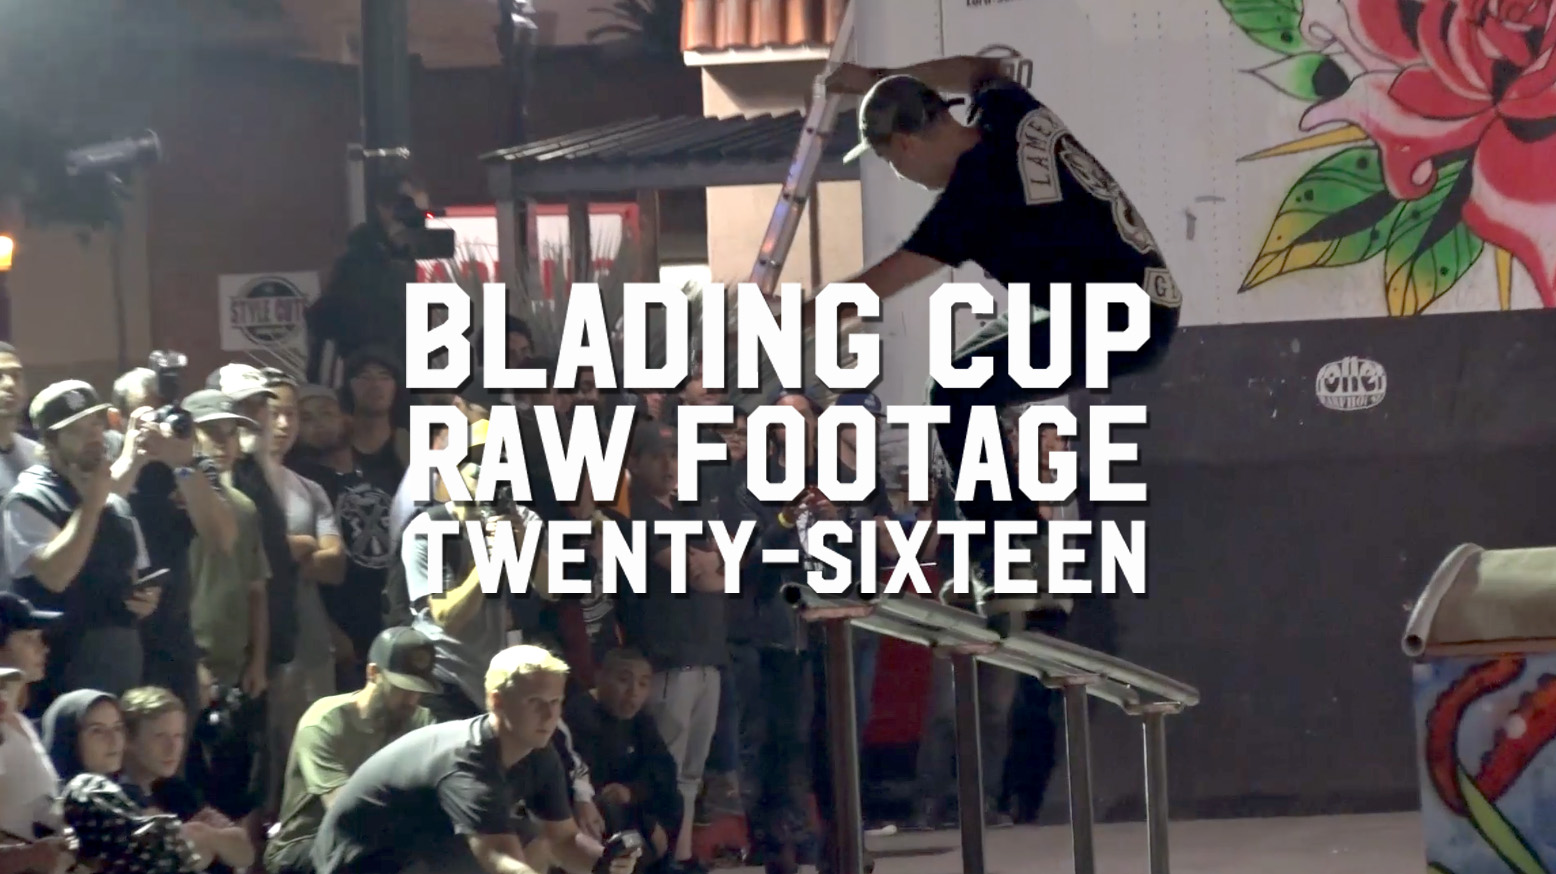 ONE @ Blading Cup 2016 Raw Footage